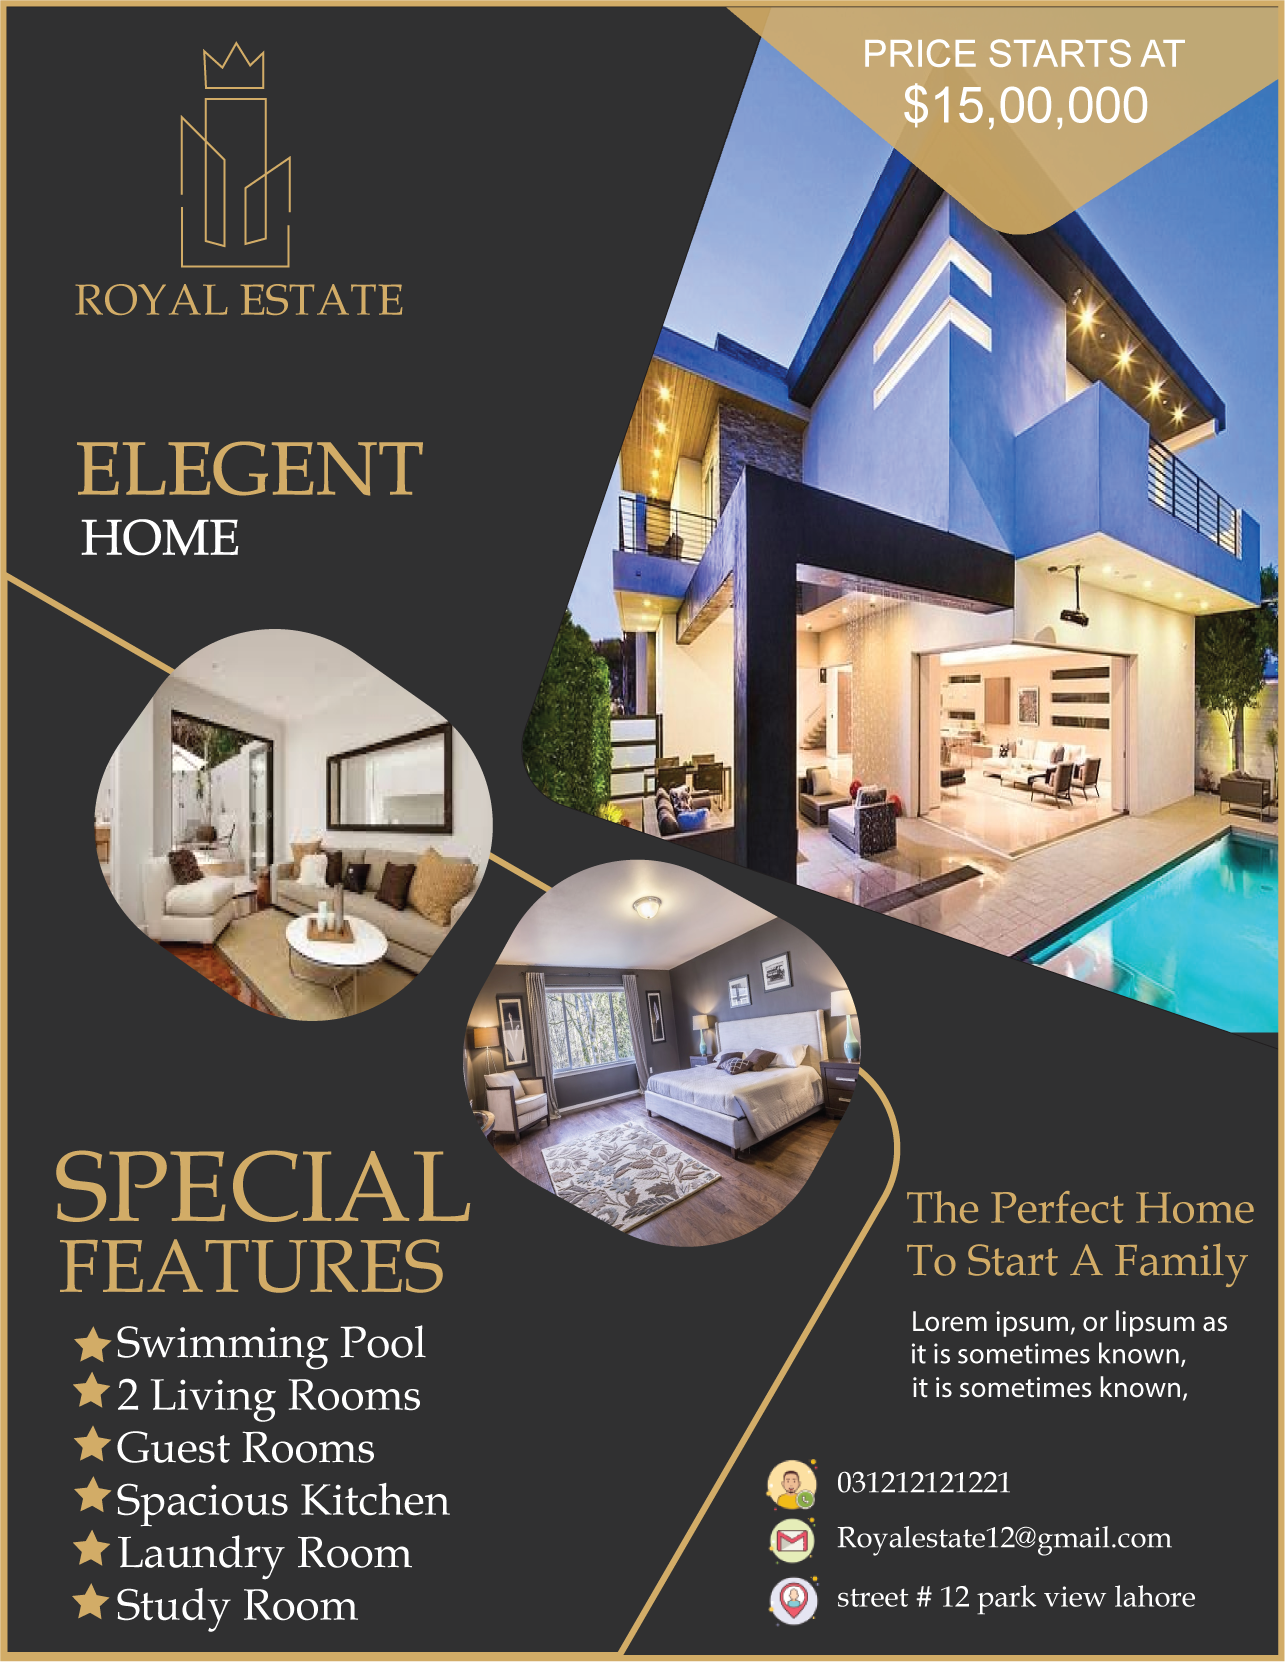 I Will Design Professional Real Estate Flyer Brochure And Web Banner For 5 Seoclerks